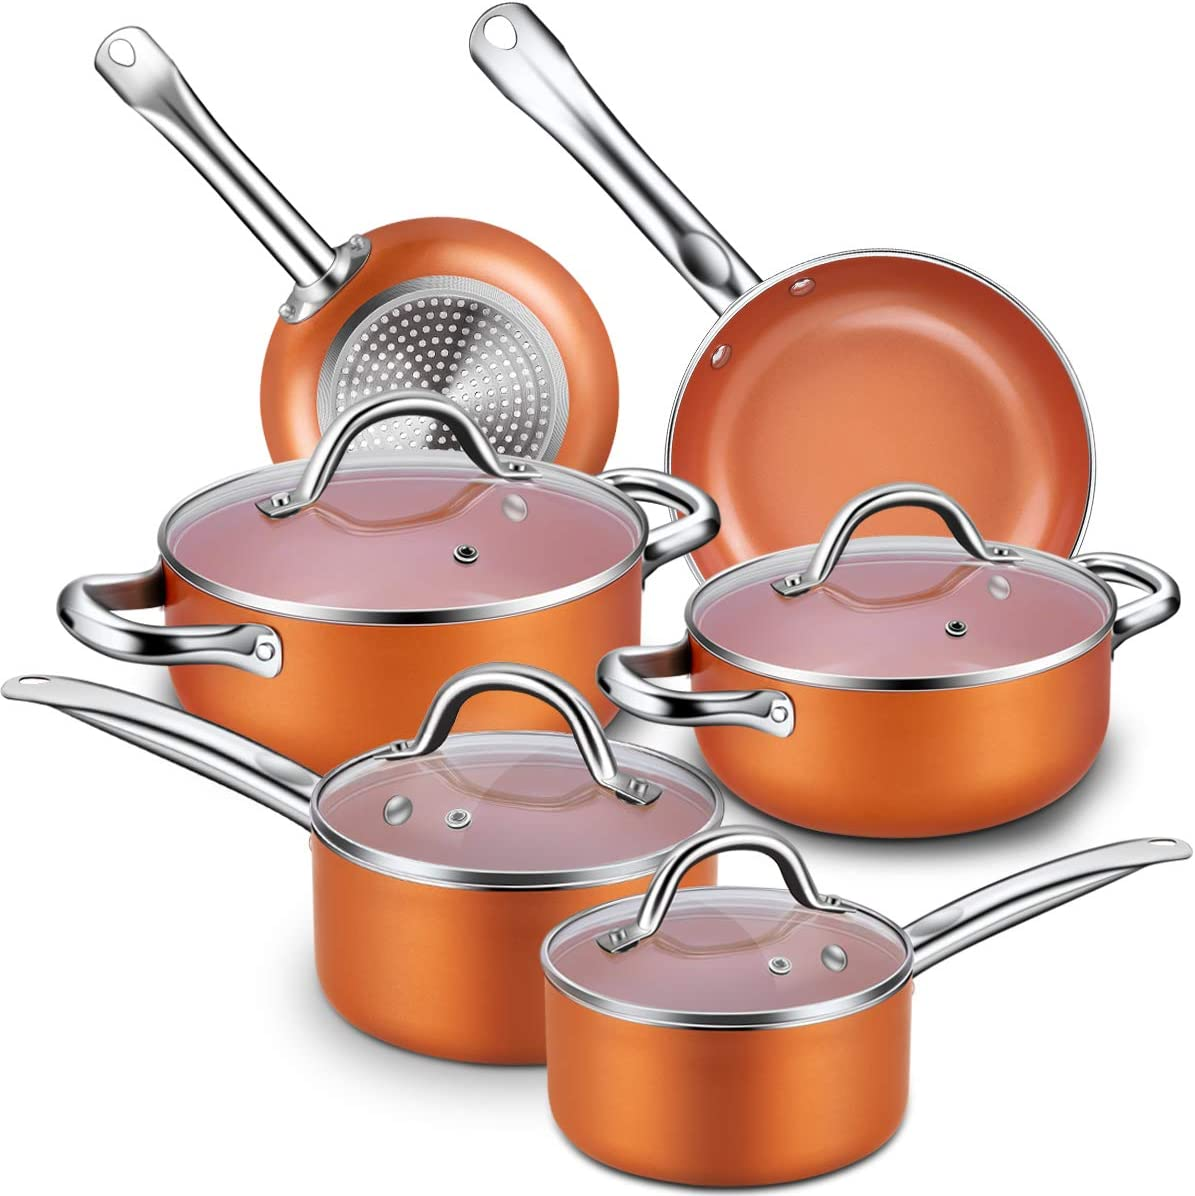 CUSINAID Aluminum Nonstick Pots and Pans for Gas Stove Image